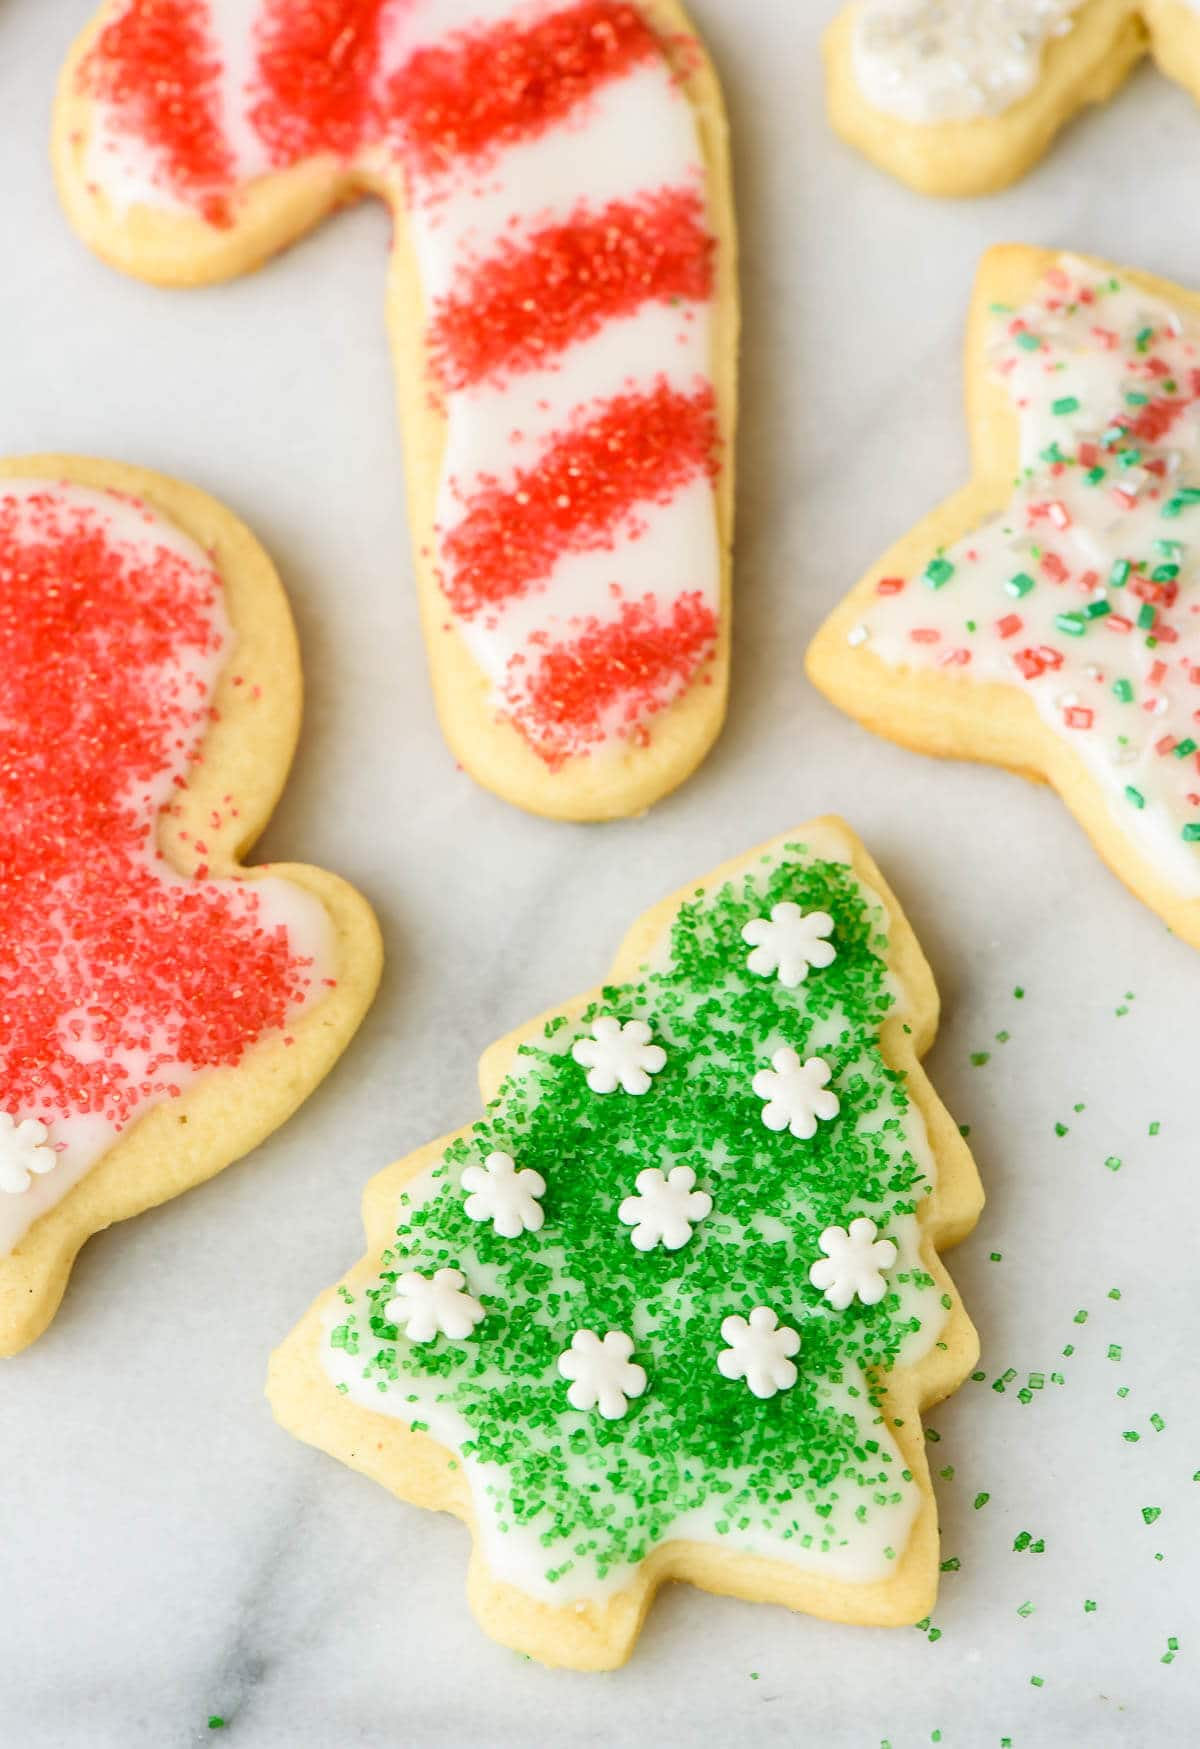 How to make cut out sugar cookies, step by step. This cream cheese sugar cookie recipe is so easy and foolproof! Even kids can make these.